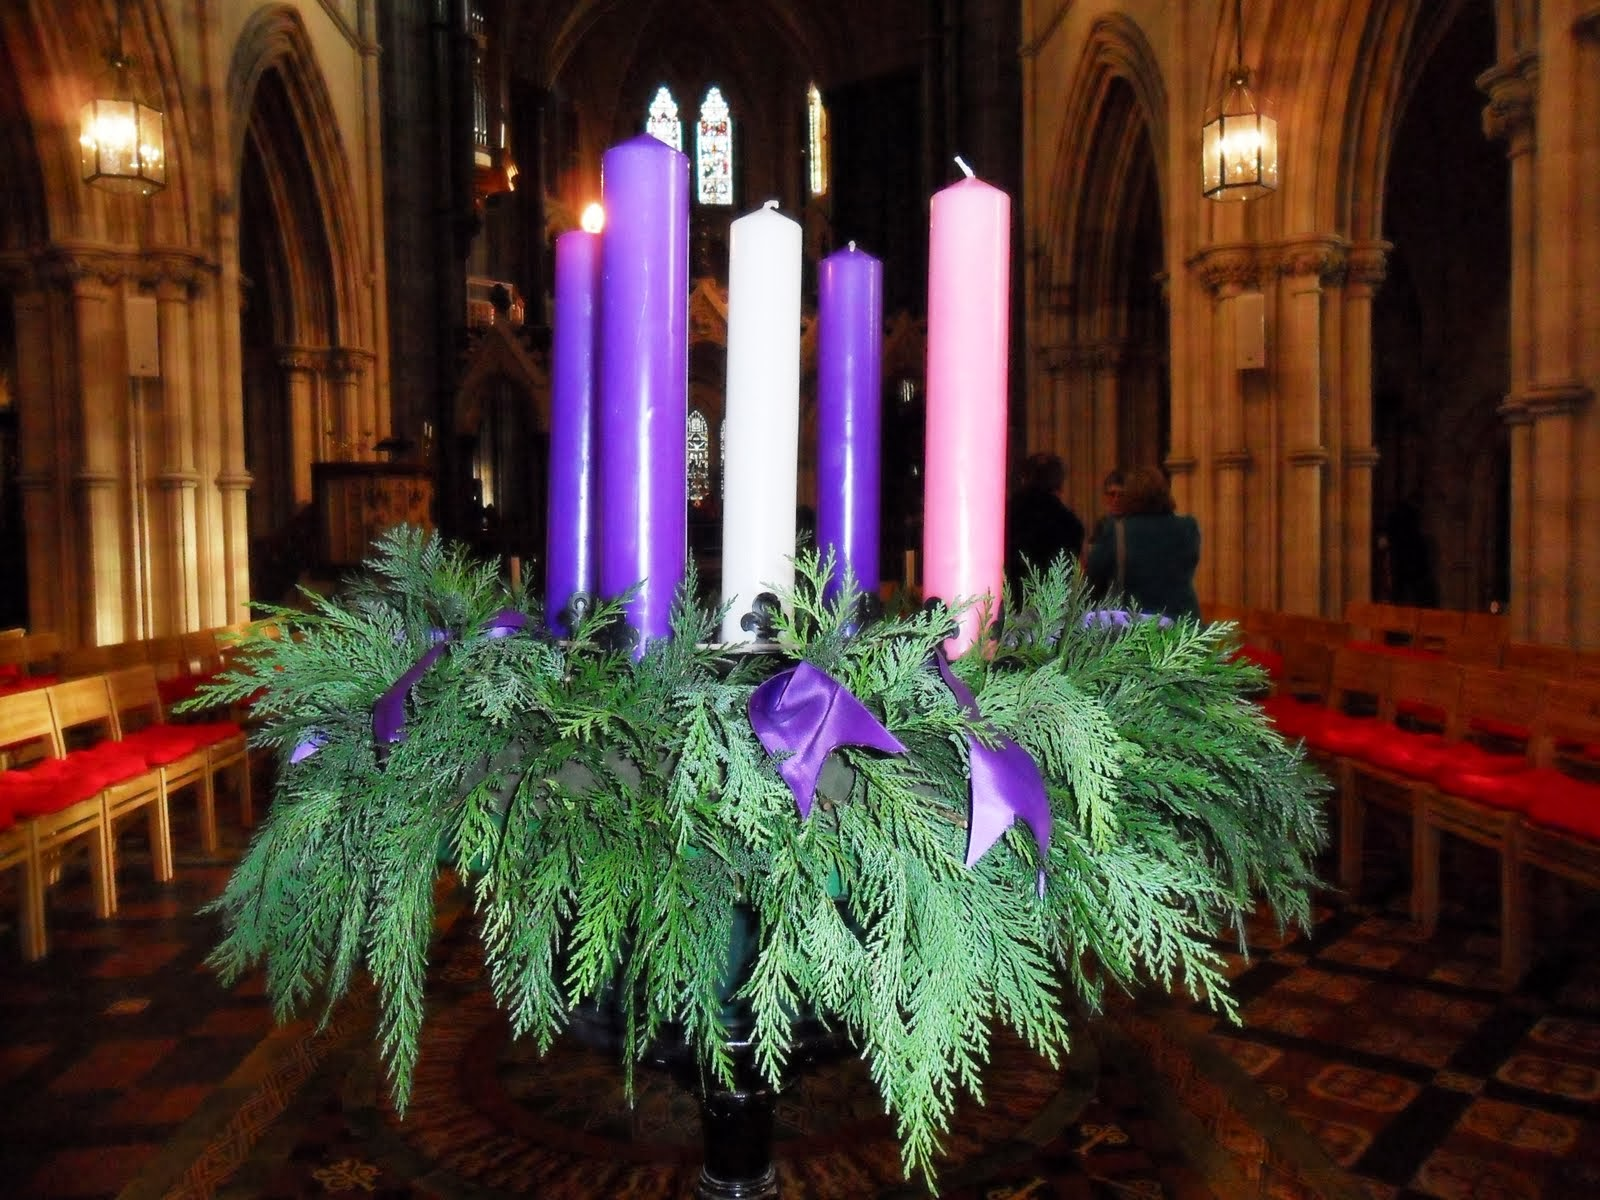 Meeting Christ in the Liturgy: The Meaning of the Advent Wreath